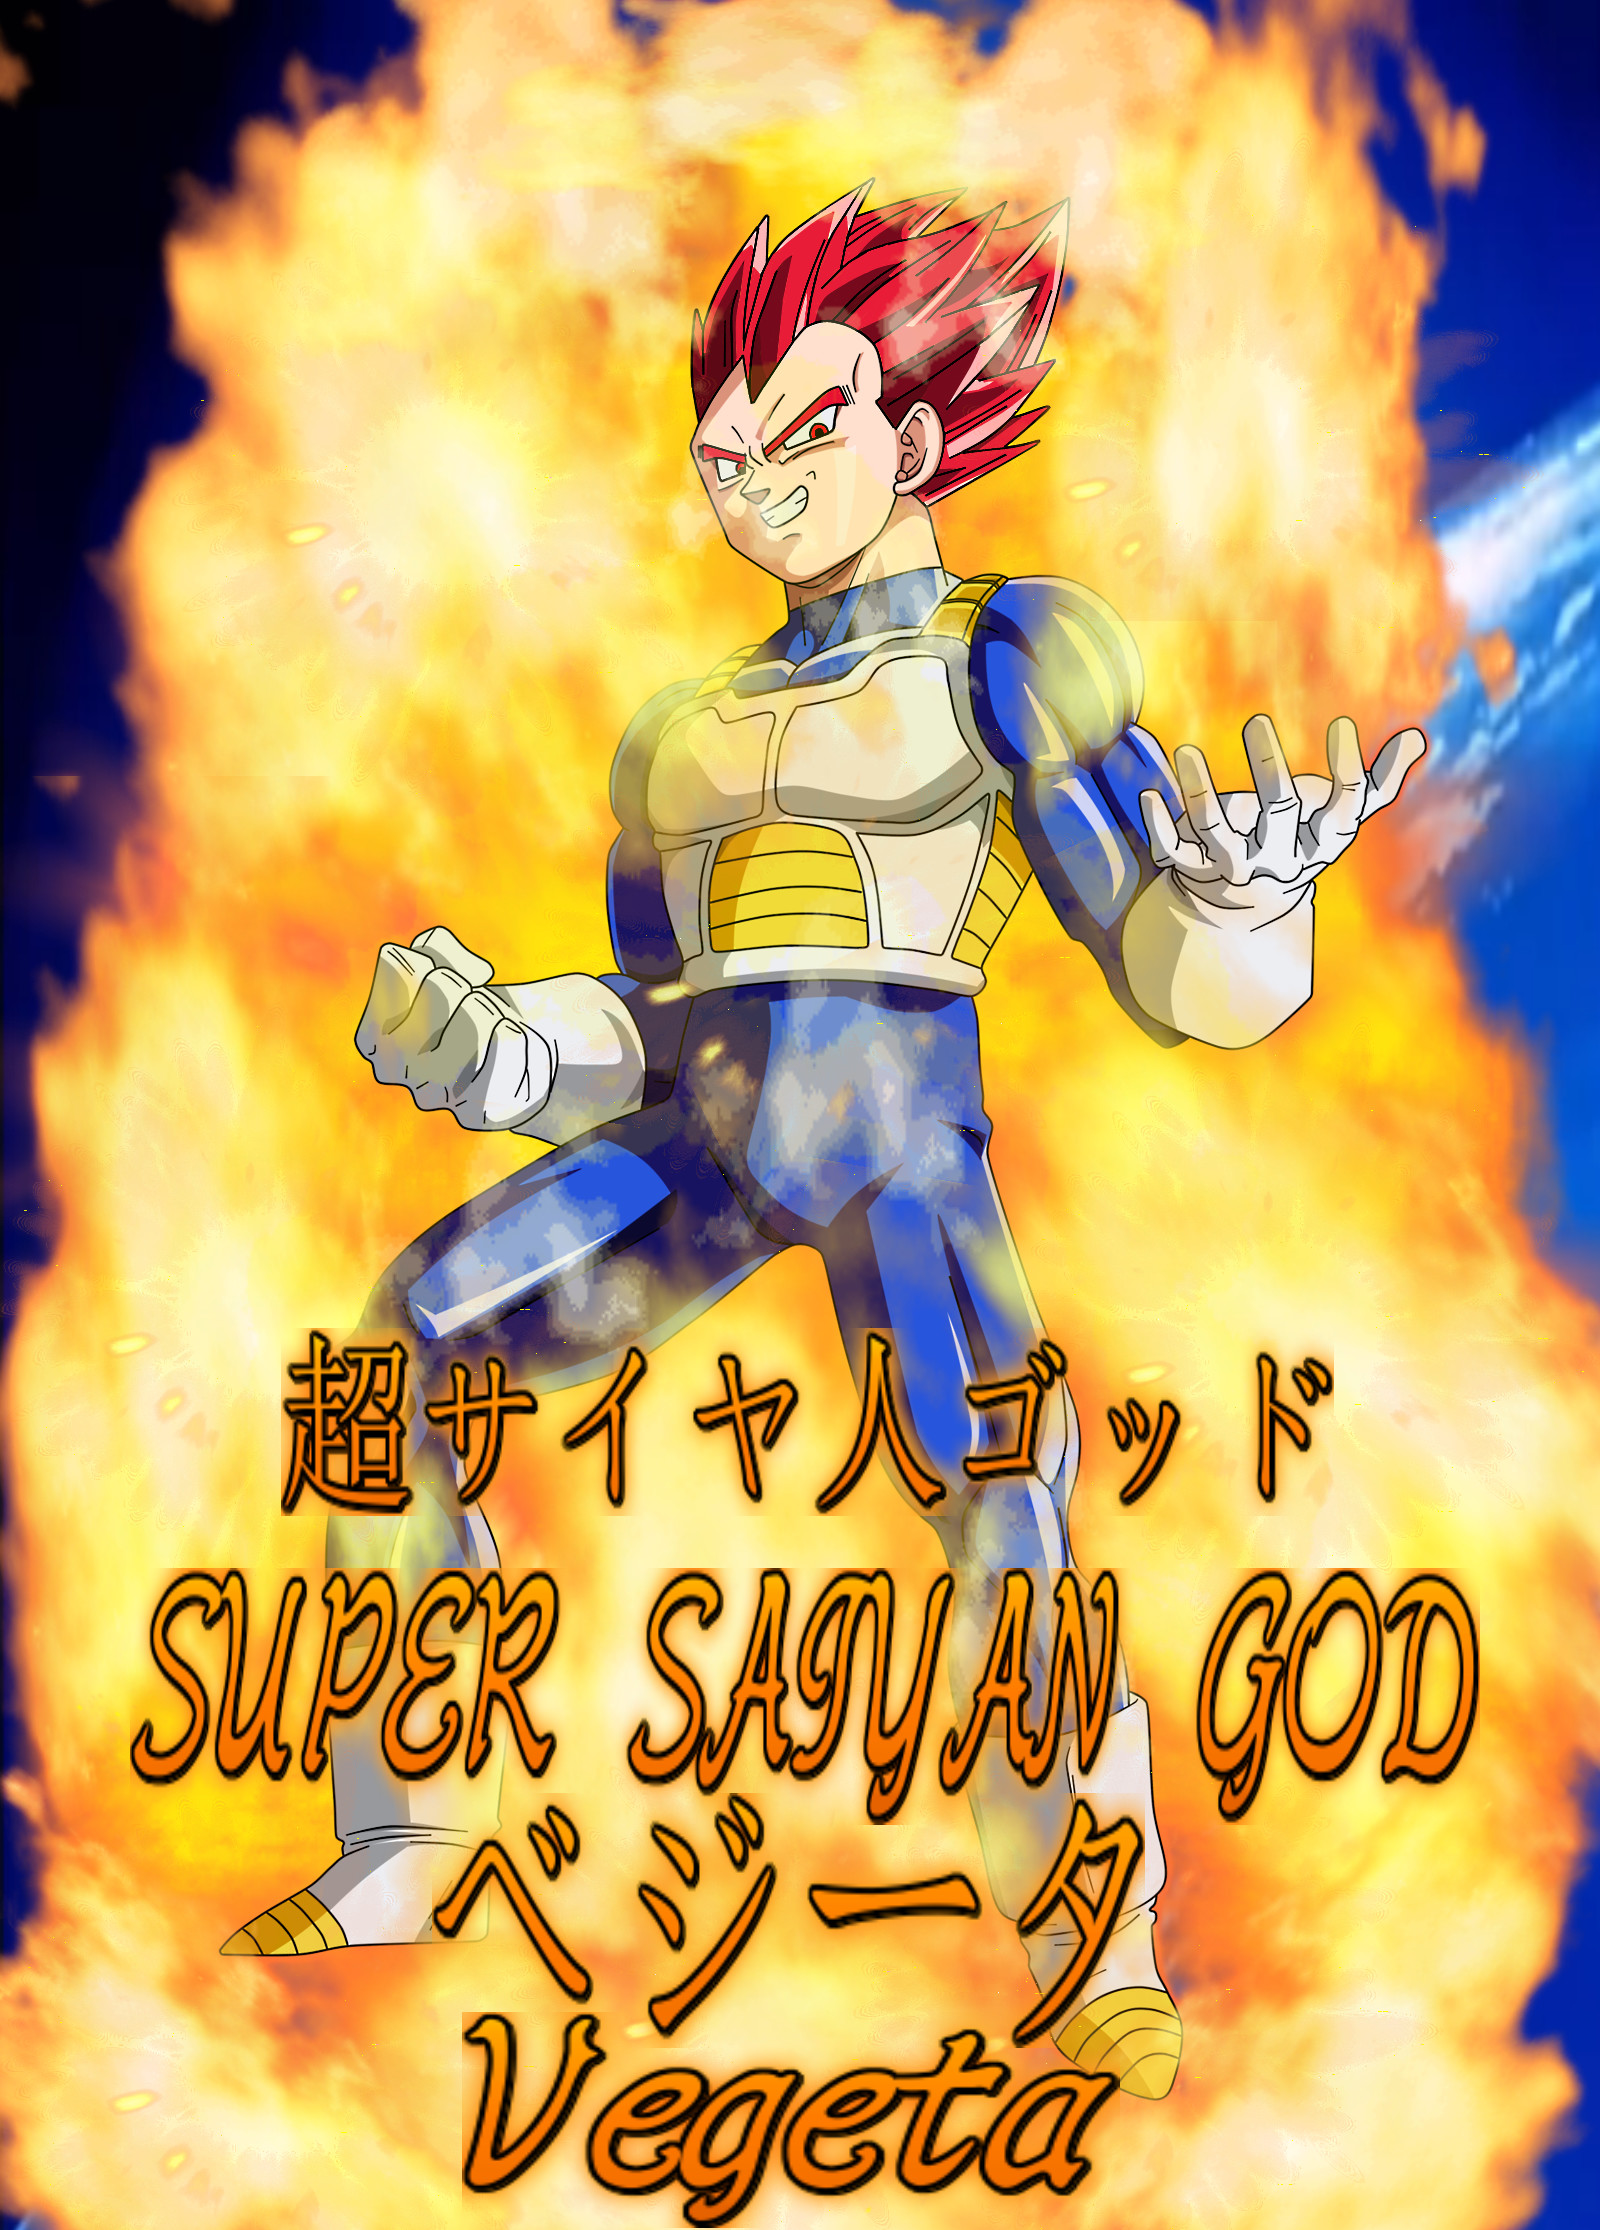 Goku Super Saiyan God by ChronoFz on DeviantArt |Goku Super Sayian God